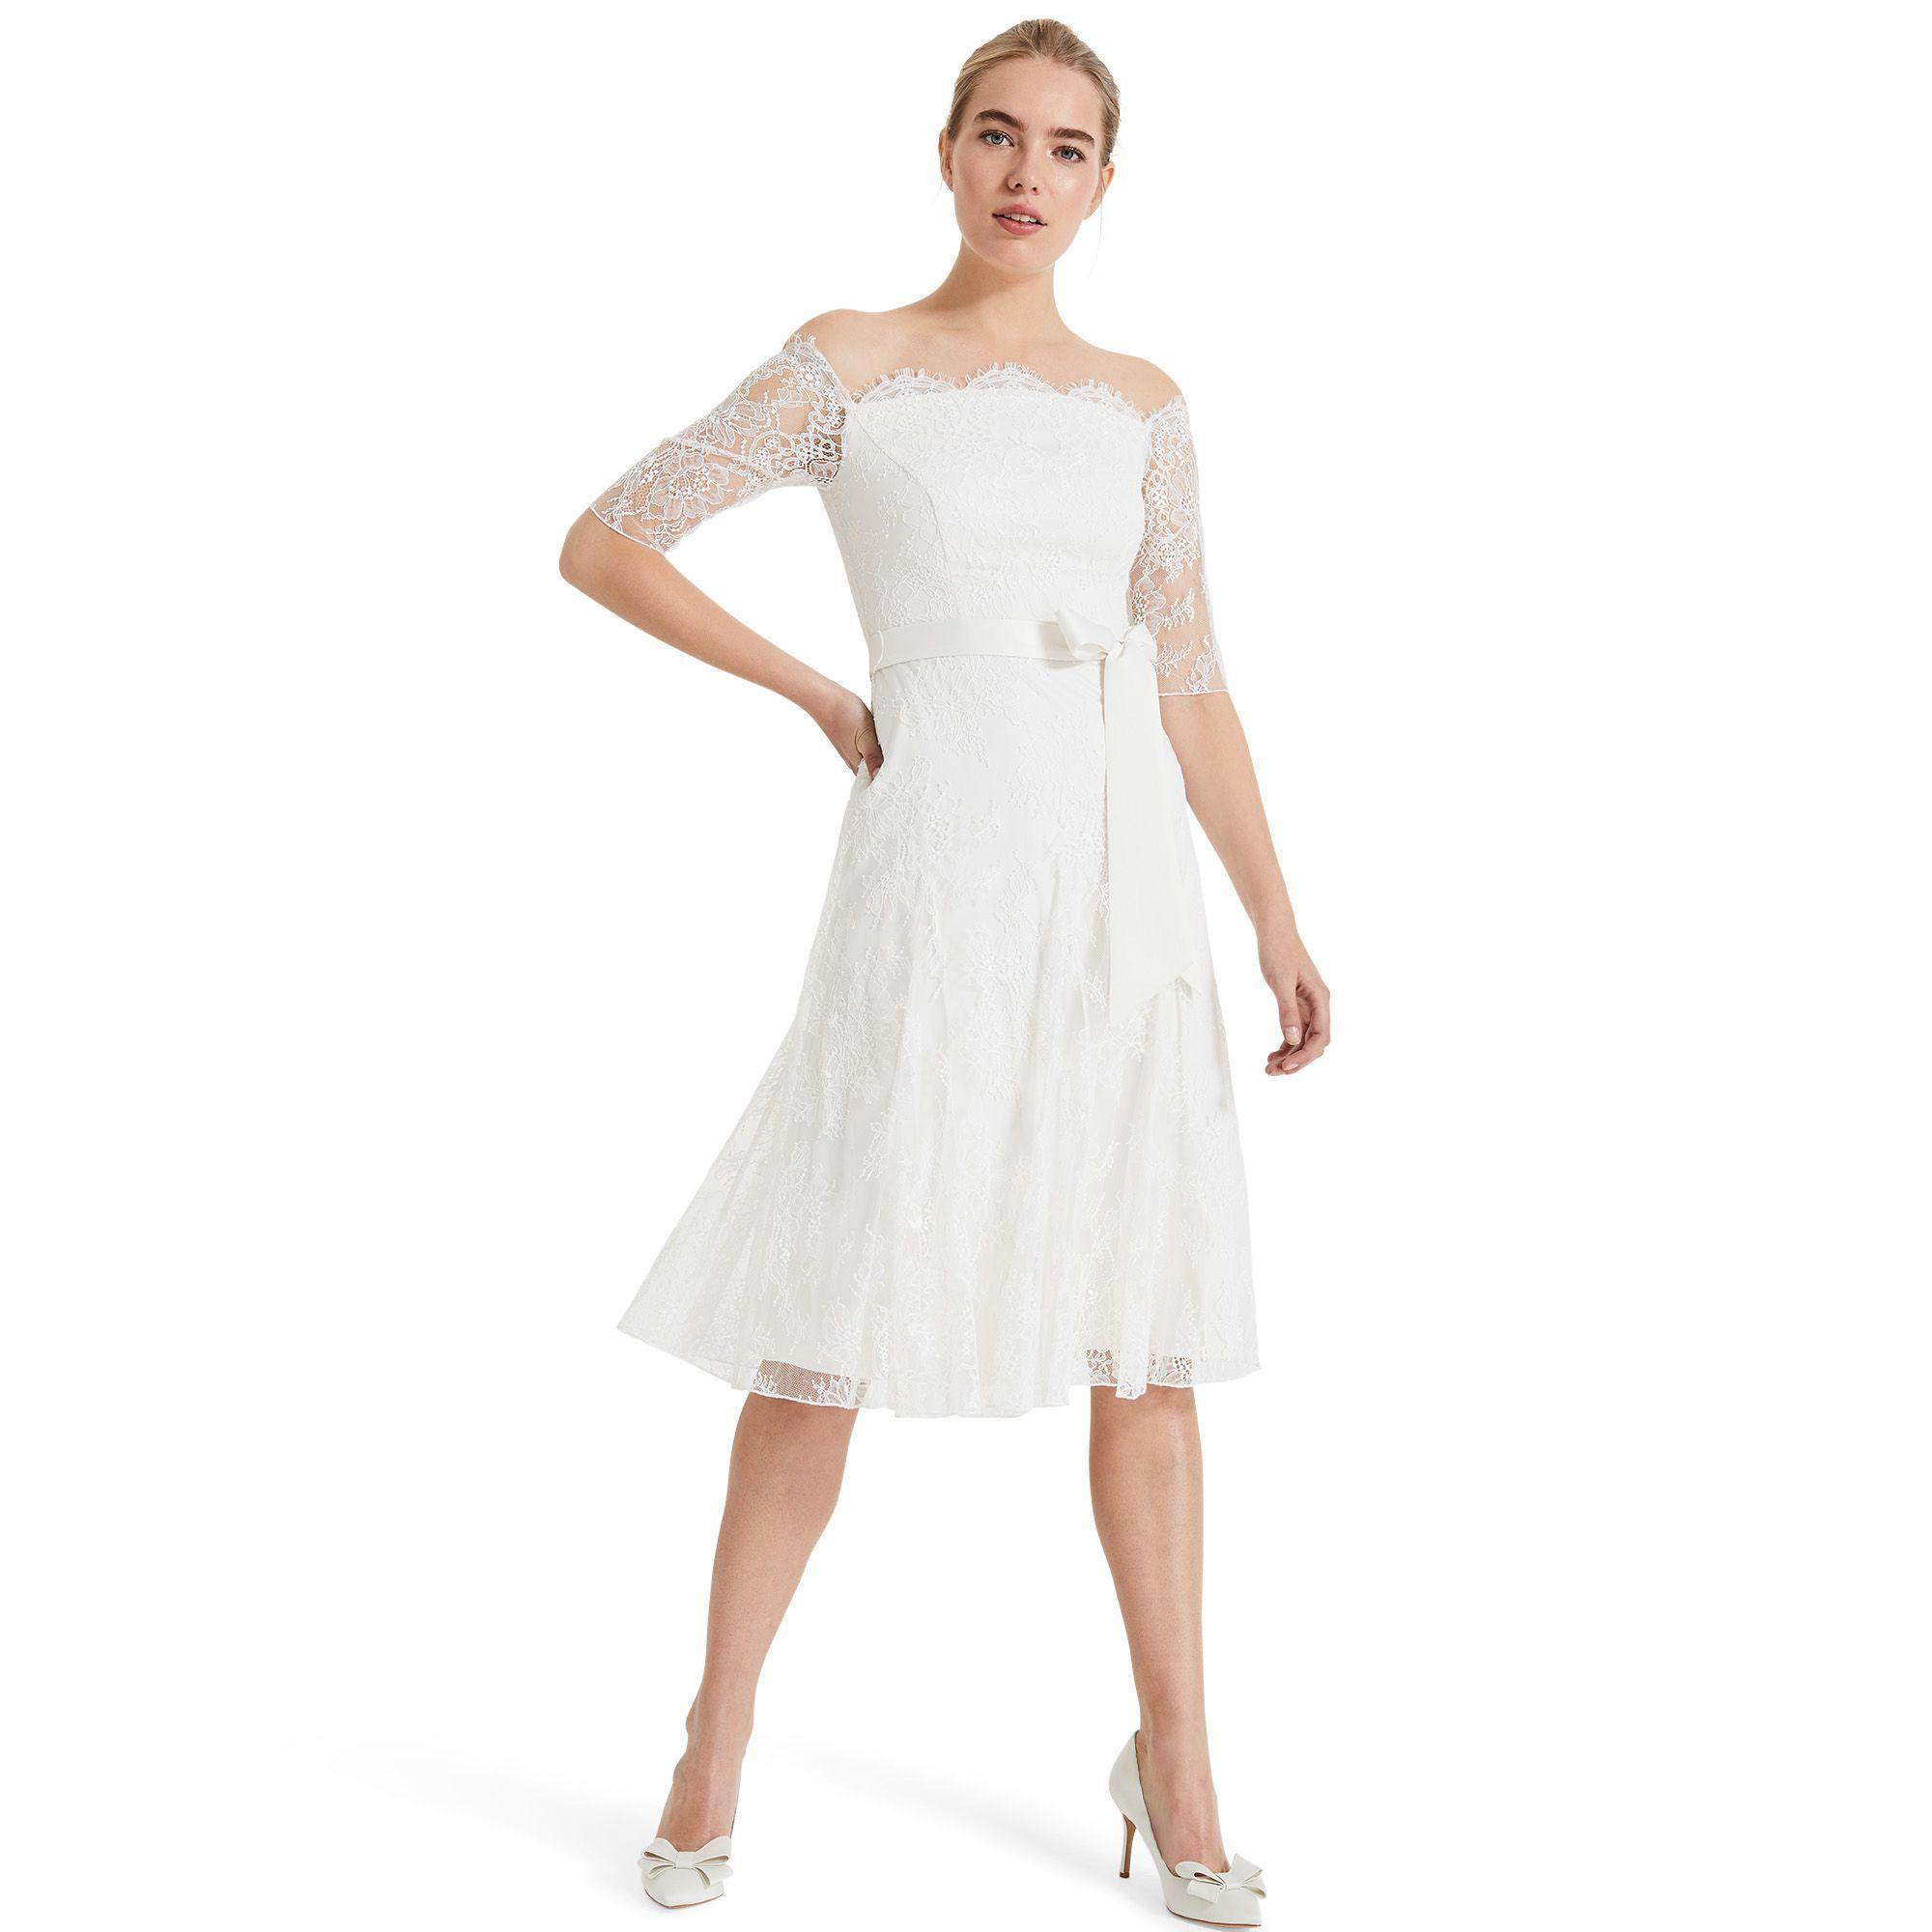 bba5adfeddf9b2 Phase Eight White Evette Lace Bridal Dress in White - Lyst